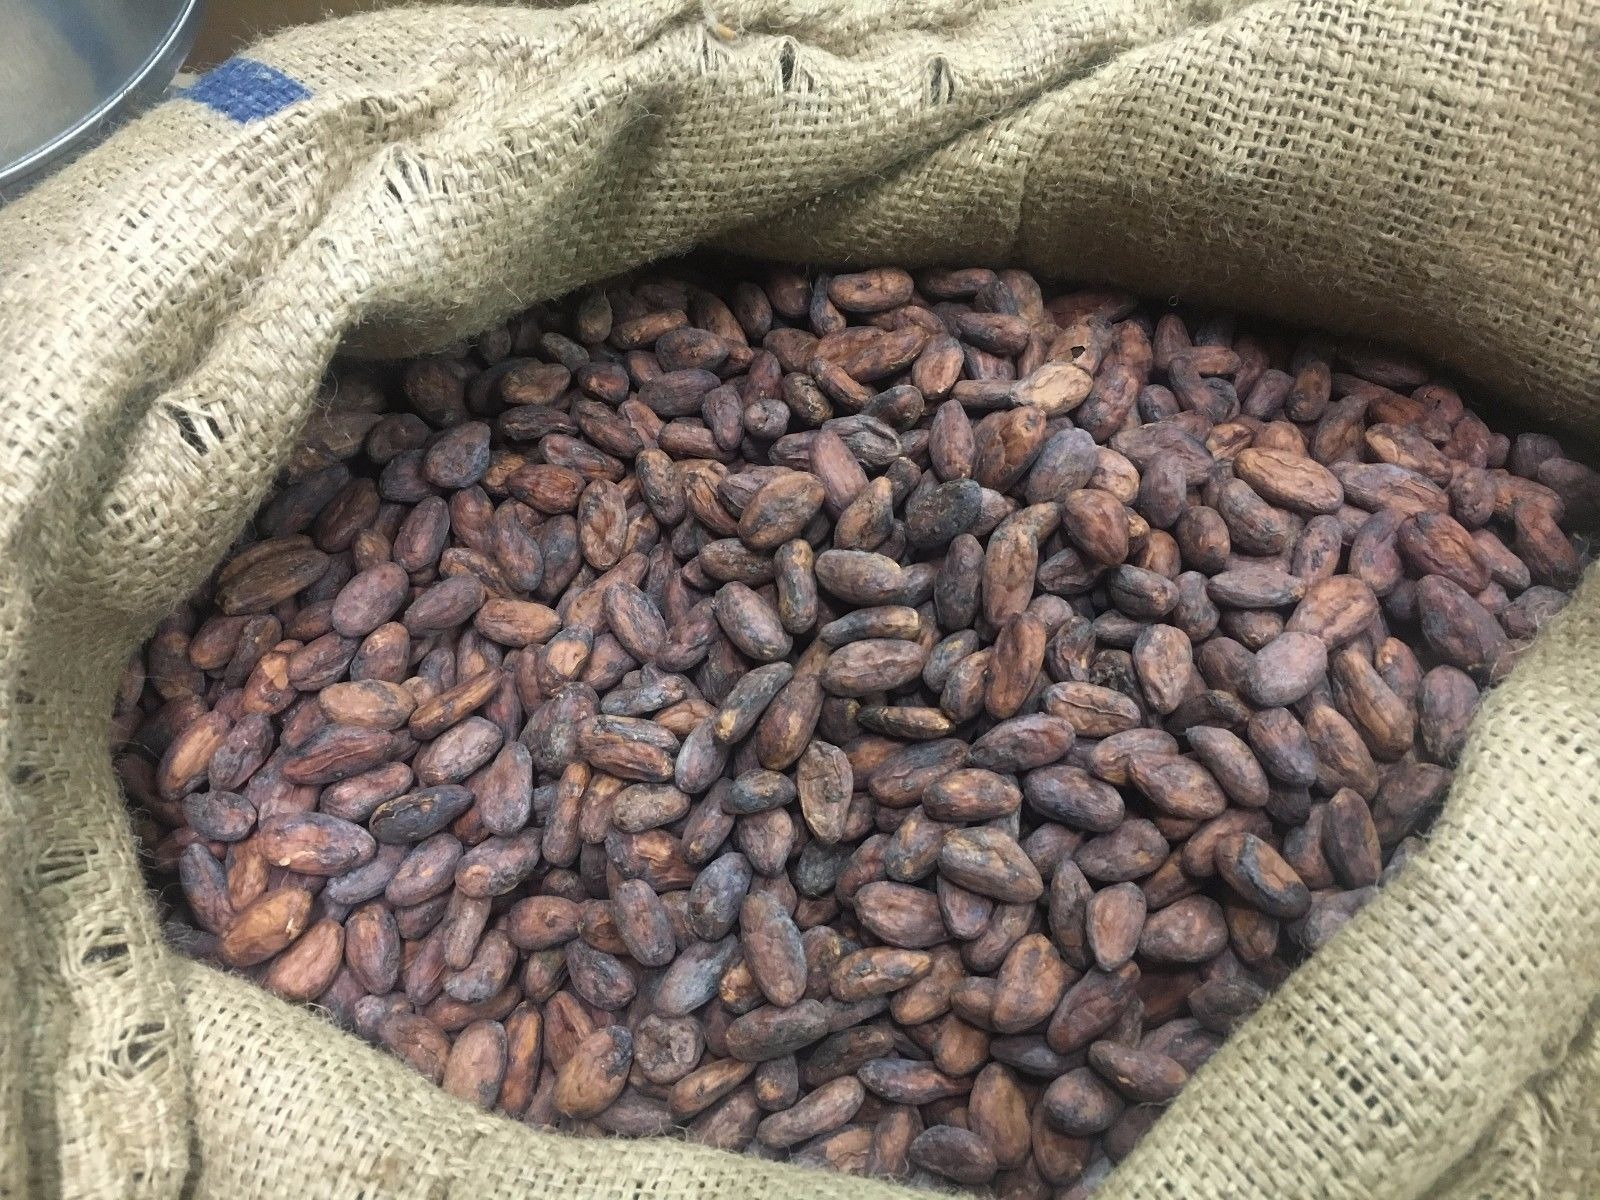 For sale : Peruvian Criollo (2017)